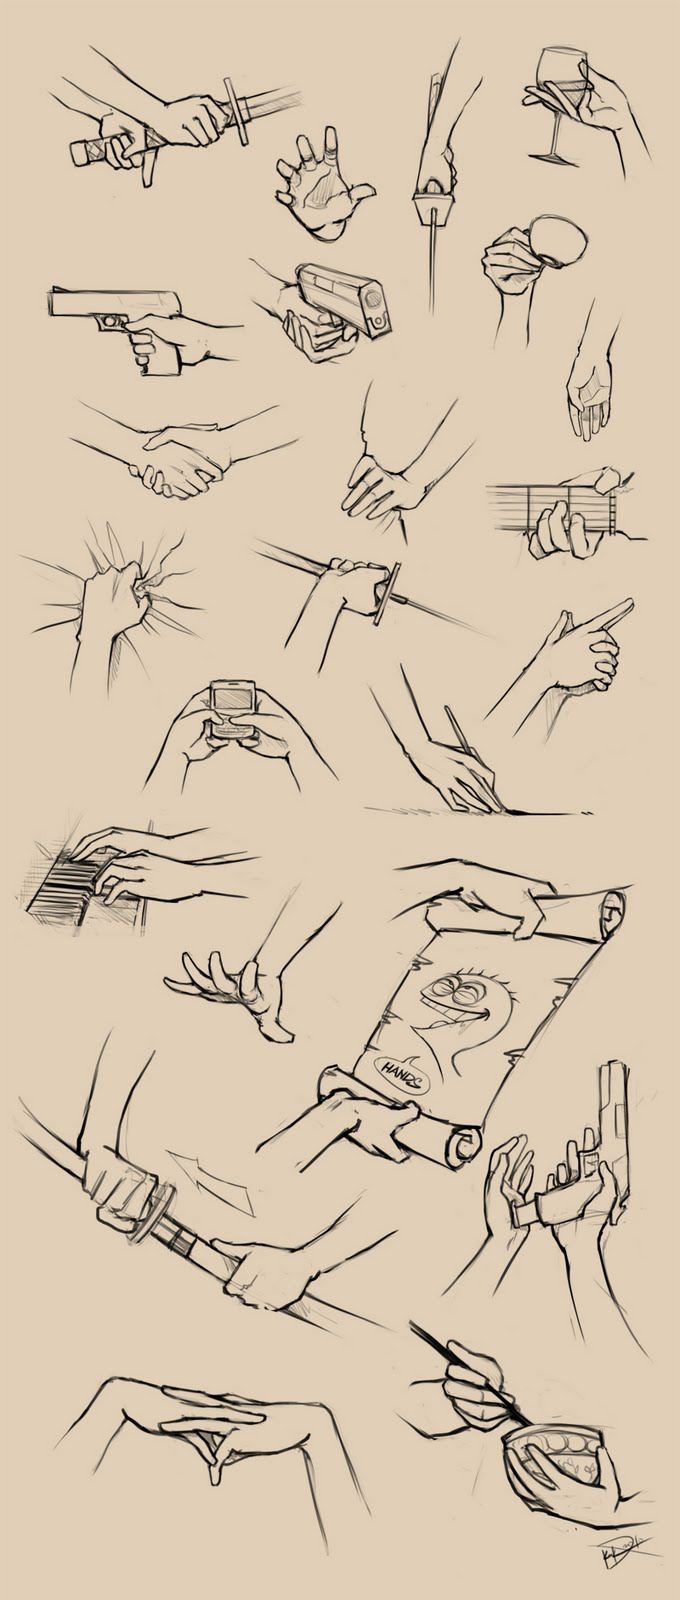 680x1600 How To Draw Hands Gripping Bunch Of Things. I Love How Cheese